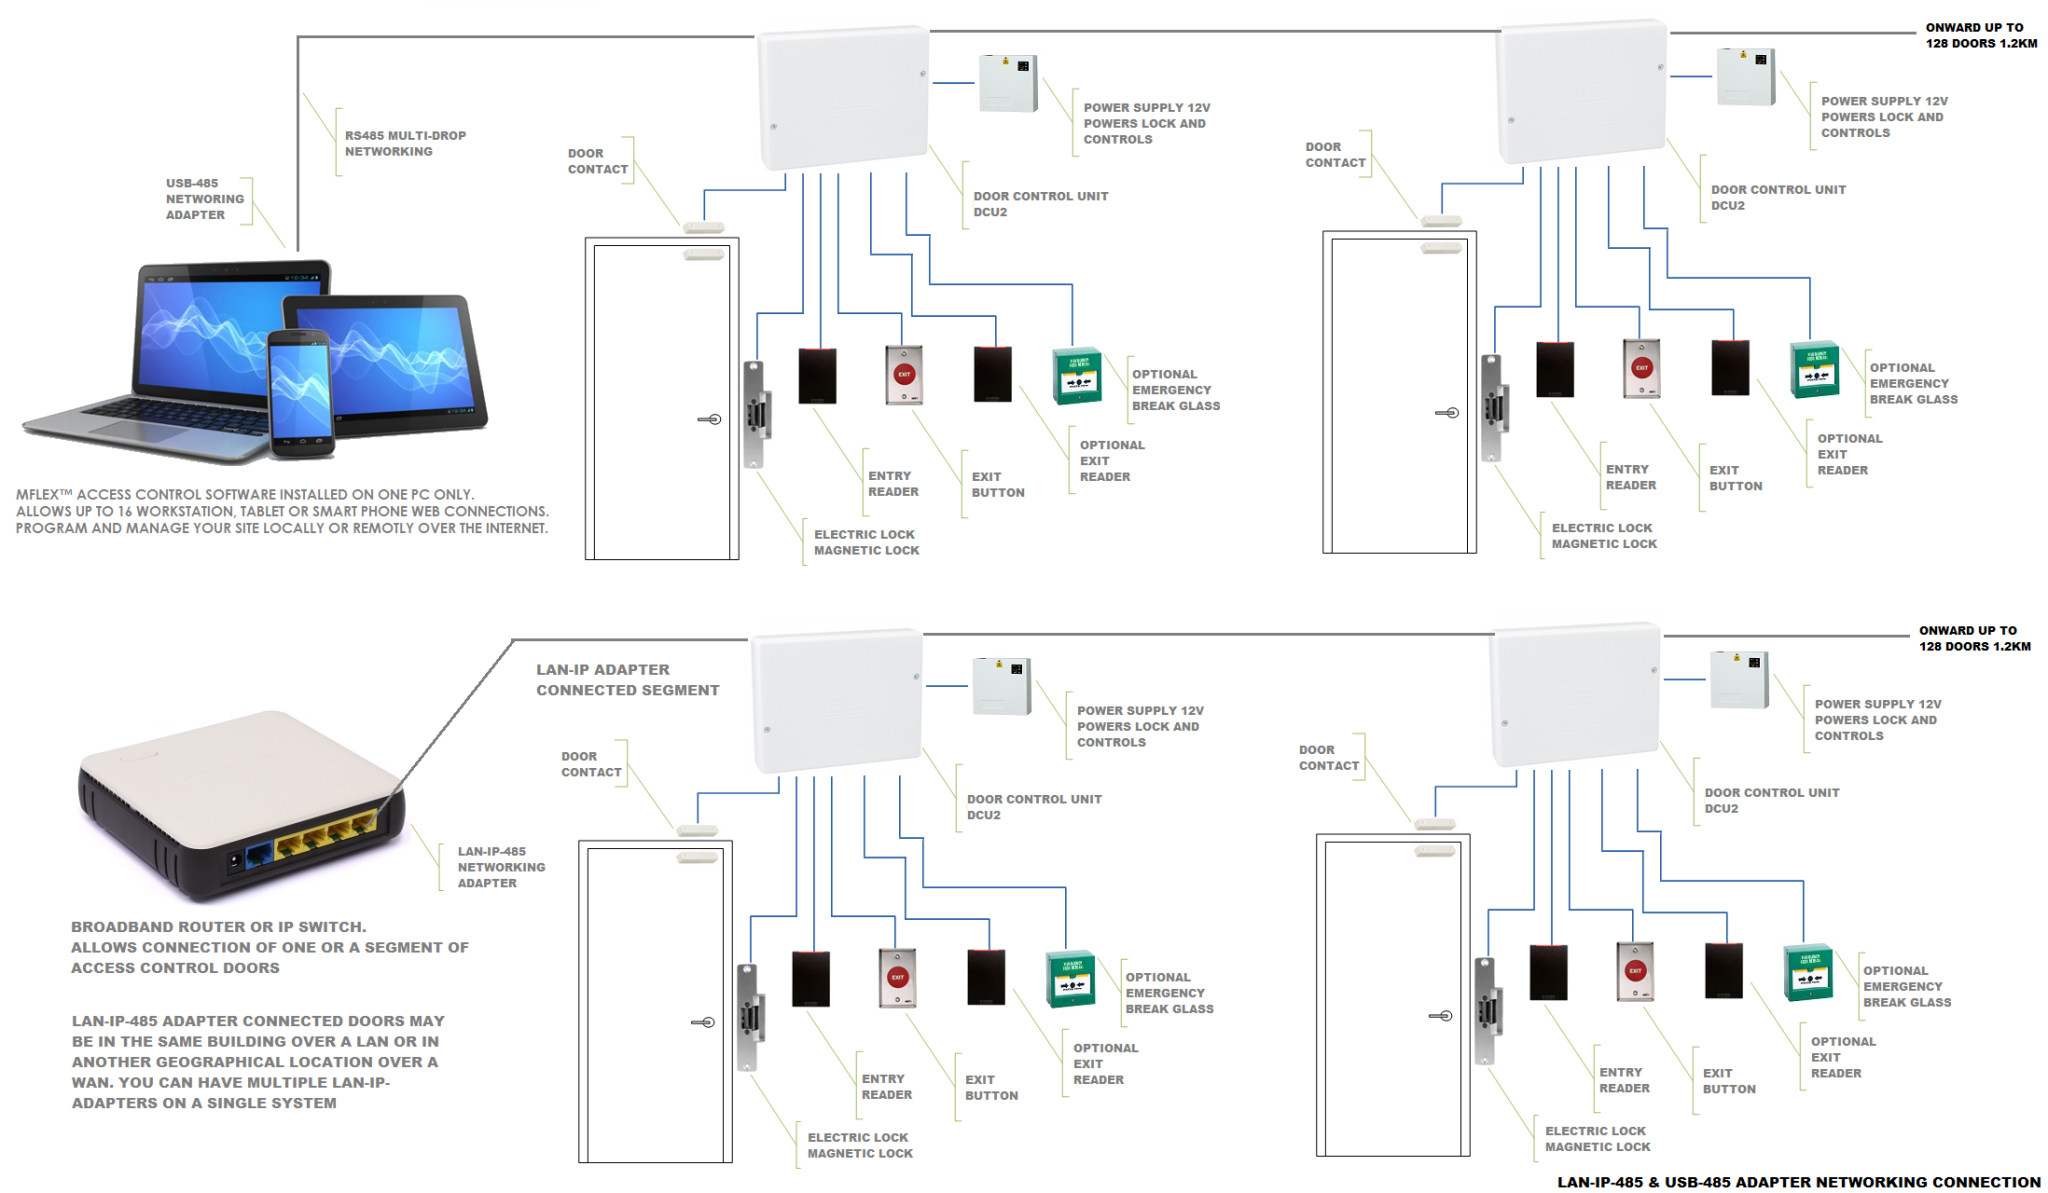 Access Control System Wiring Diagram Starting Know About 485 Connection Mflex U2122 Card Systems Door